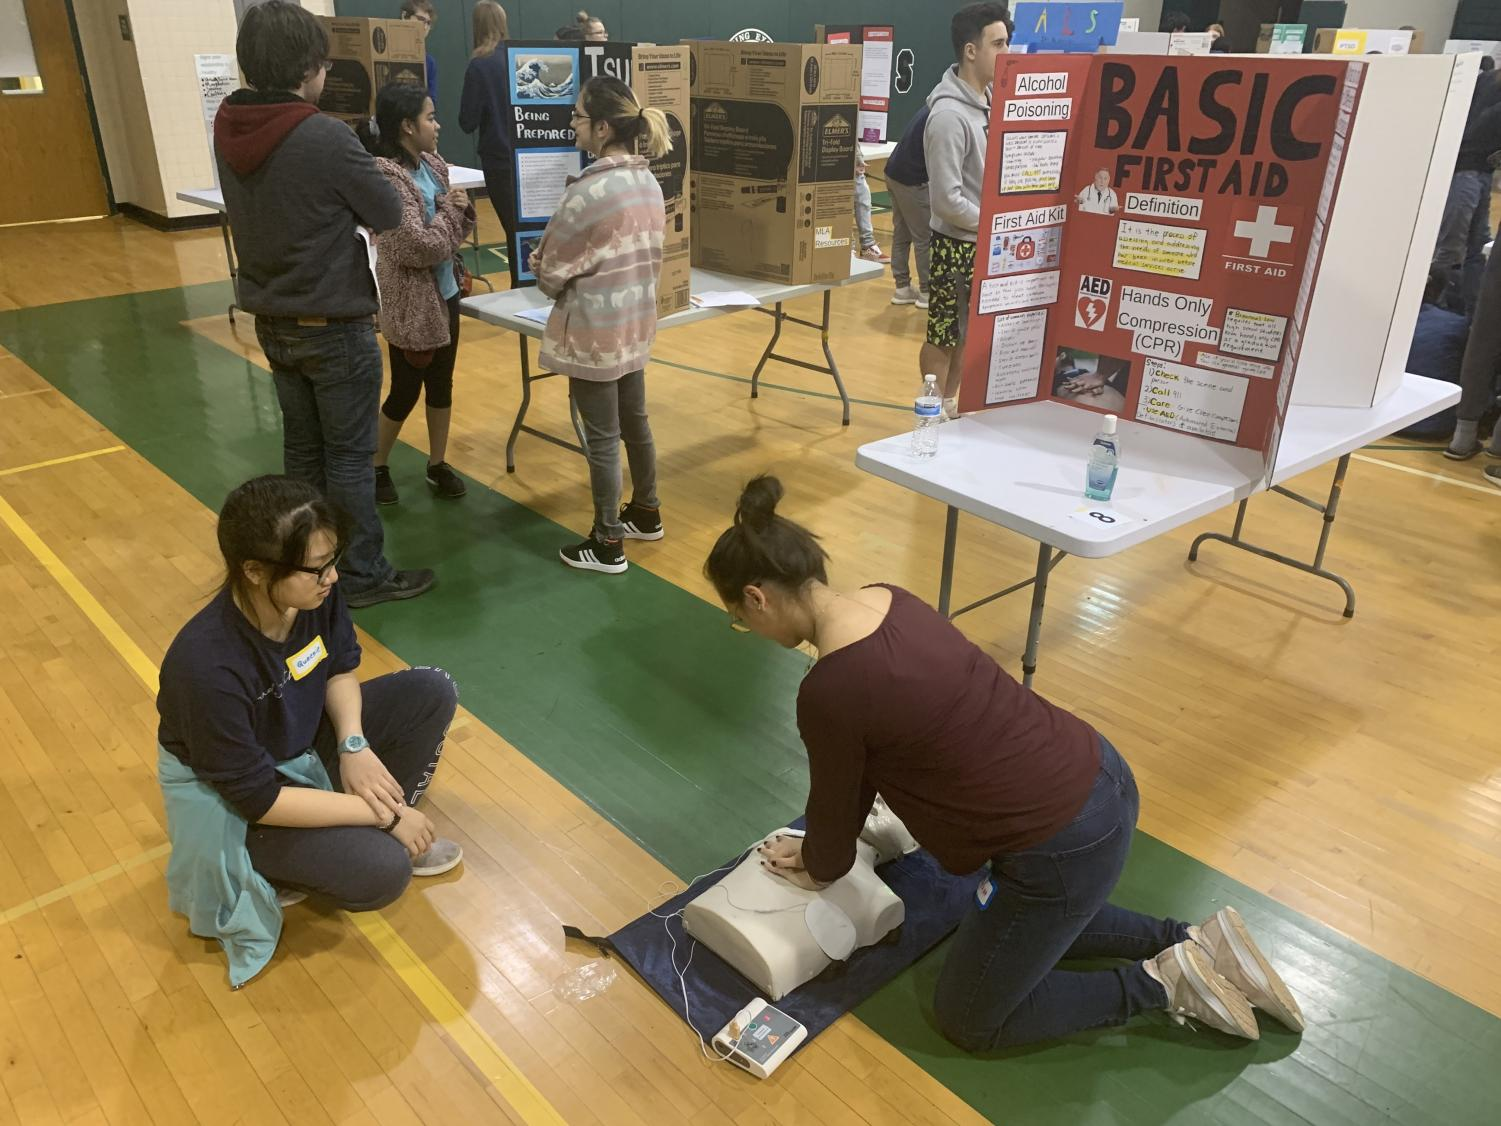 Two students practice their CPR skills to demonstrate the importance of basic first-aid knowledge. This was one of many interactive presentations at the fair that taught students certain health skills.